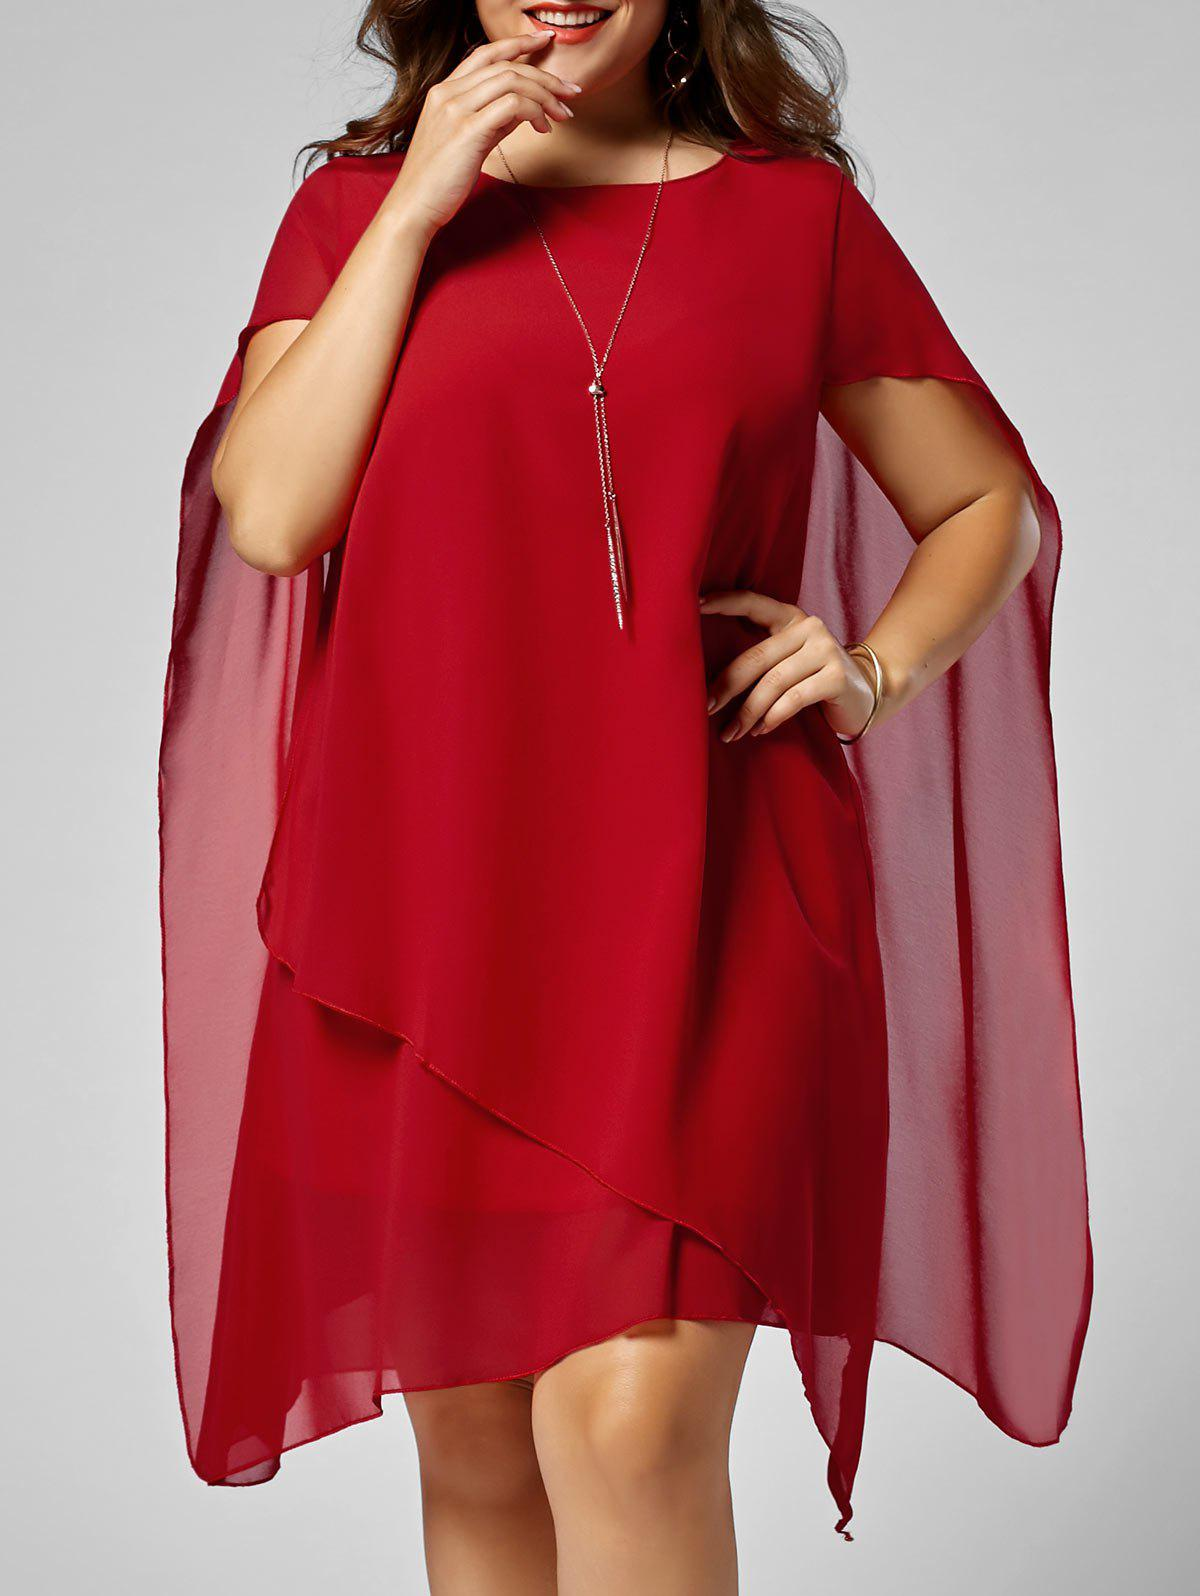 Asymmetric Chiffon Plus Size Cape Swing Shift DressWOMEN<br><br>Size: 3XL; Color: RED; Style: Brief; Material: Polyester; Silhouette: Asymmetrical; Dresses Length: Knee-Length; Neckline: Round Collar; Sleeve Length: Short Sleeves; Pattern Type: Solid Color; With Belt: No; Season: Summer; Weight: 0.4200kg; Package Contents: 1 x Dress;